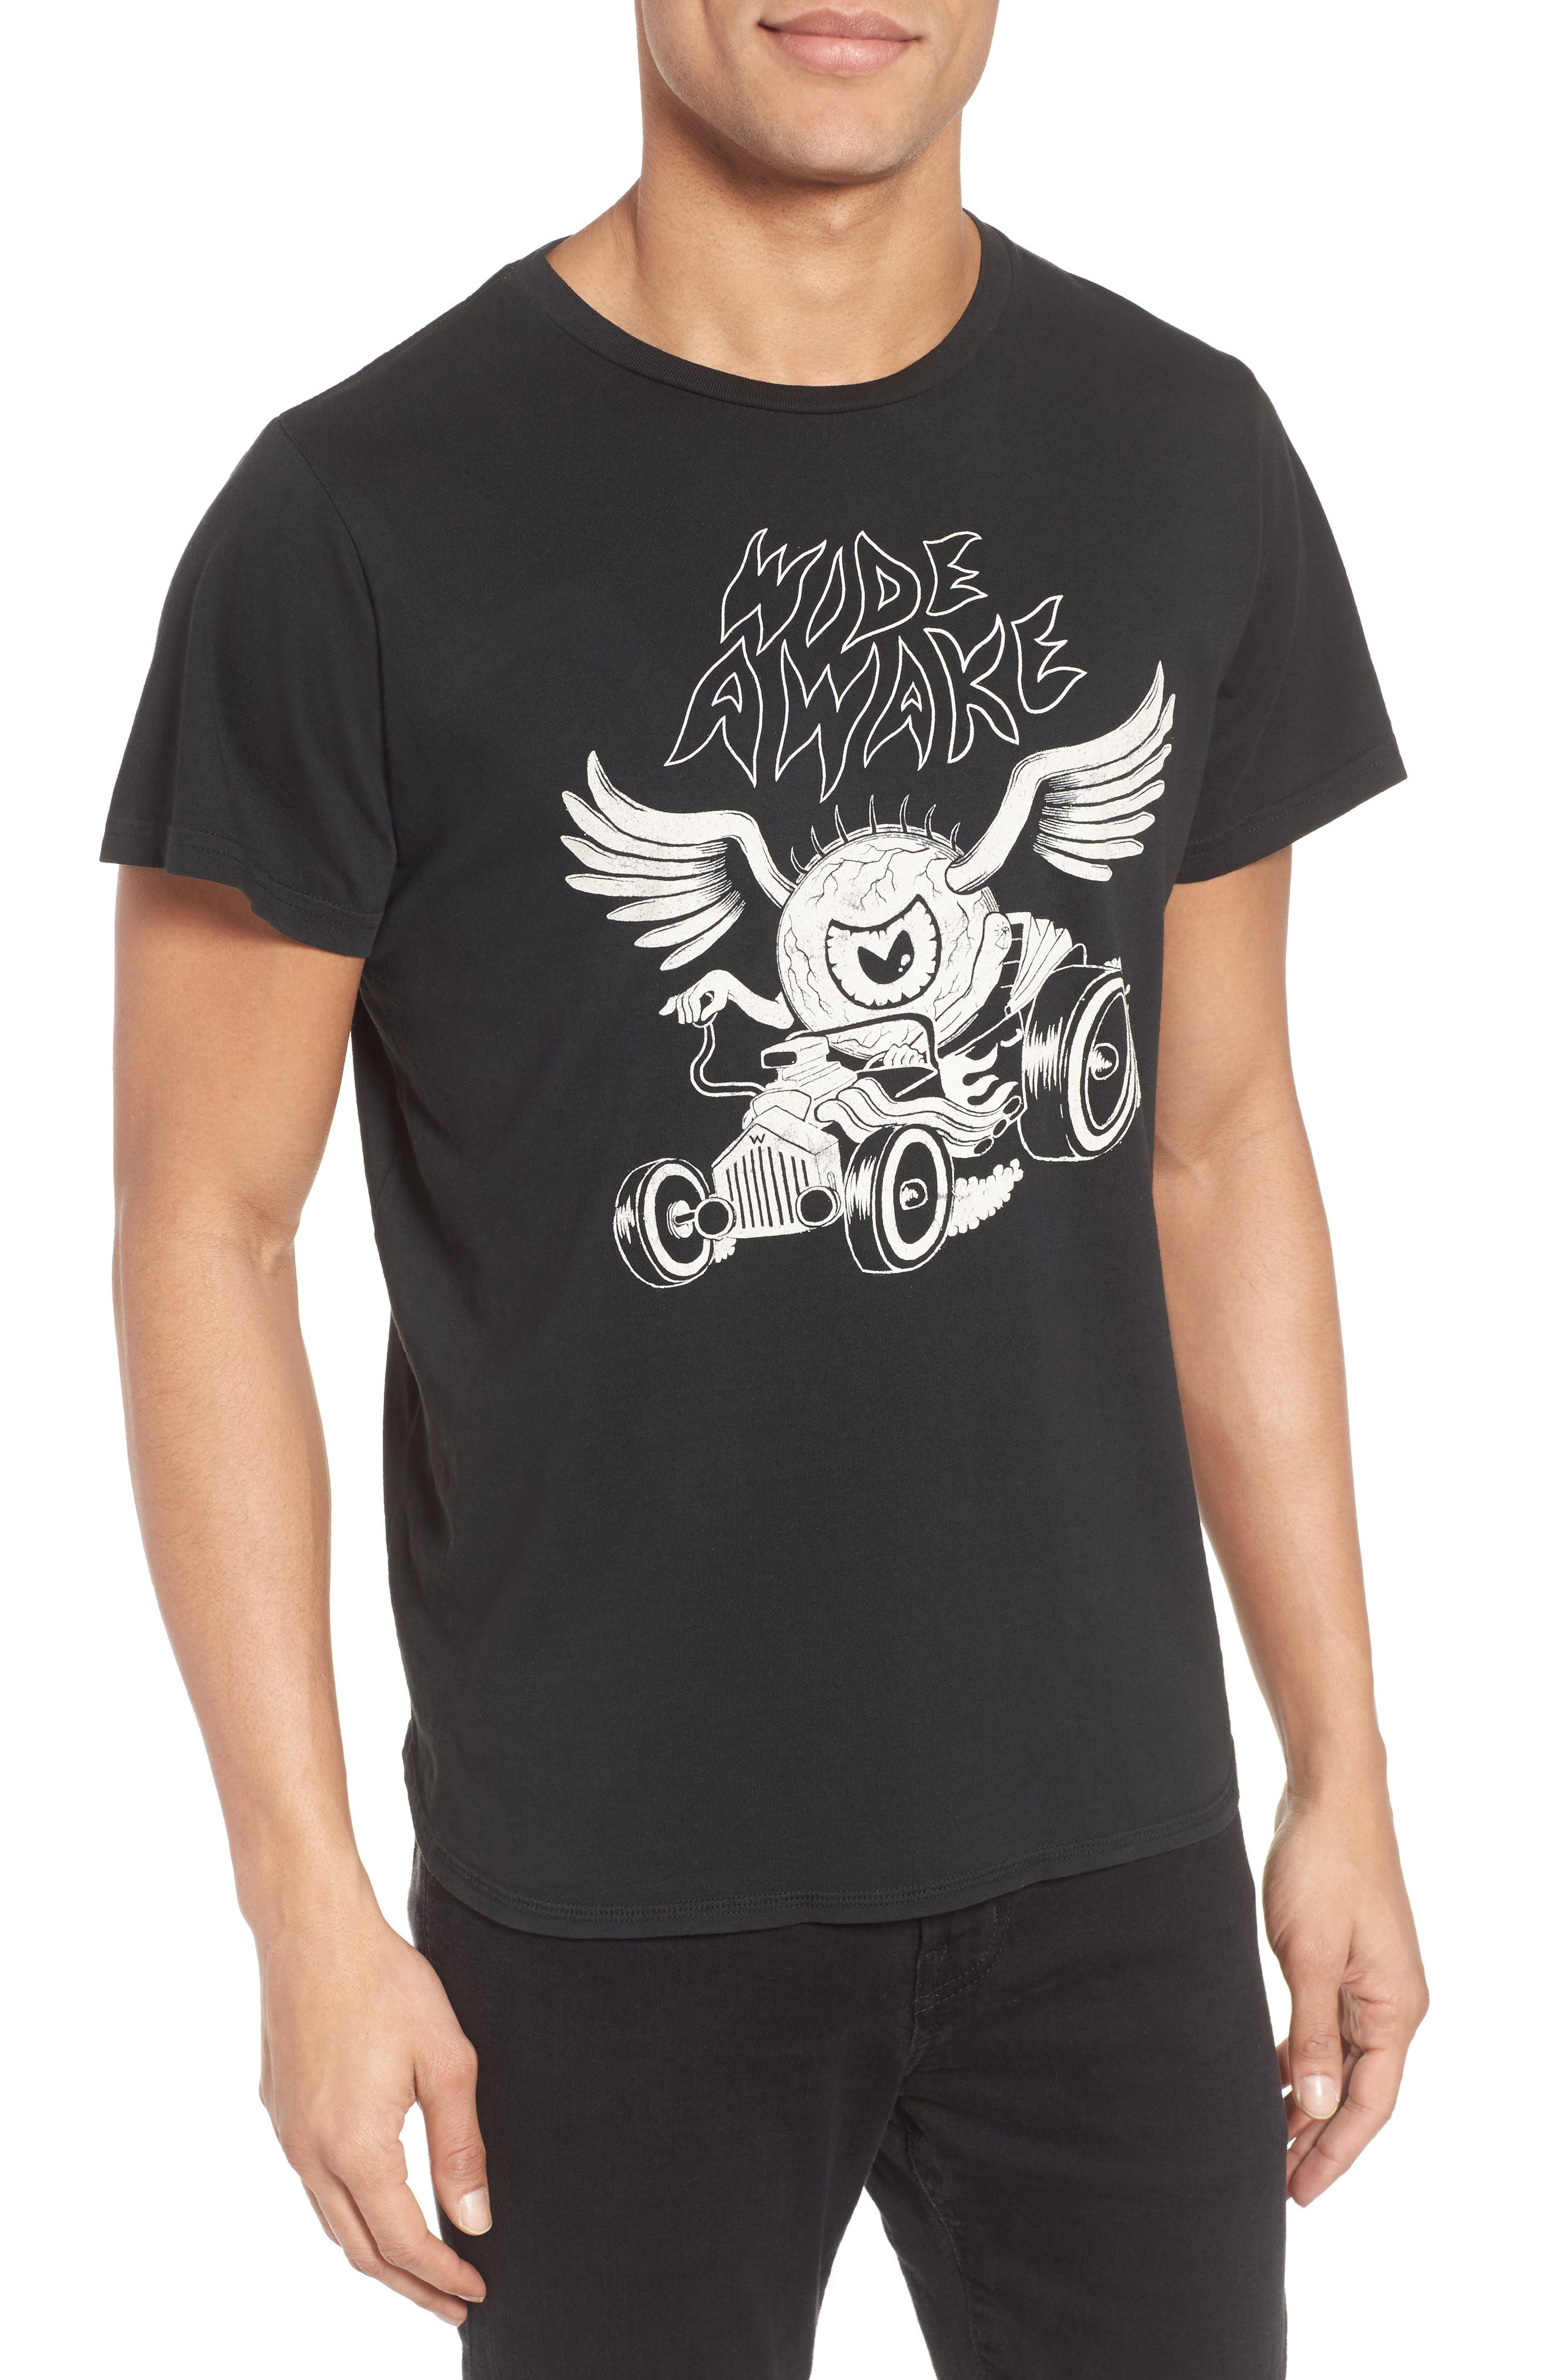 Wide Awake Graphic T-Shirt,                             Main thumbnail 1, color,                             DUSTY BLACK